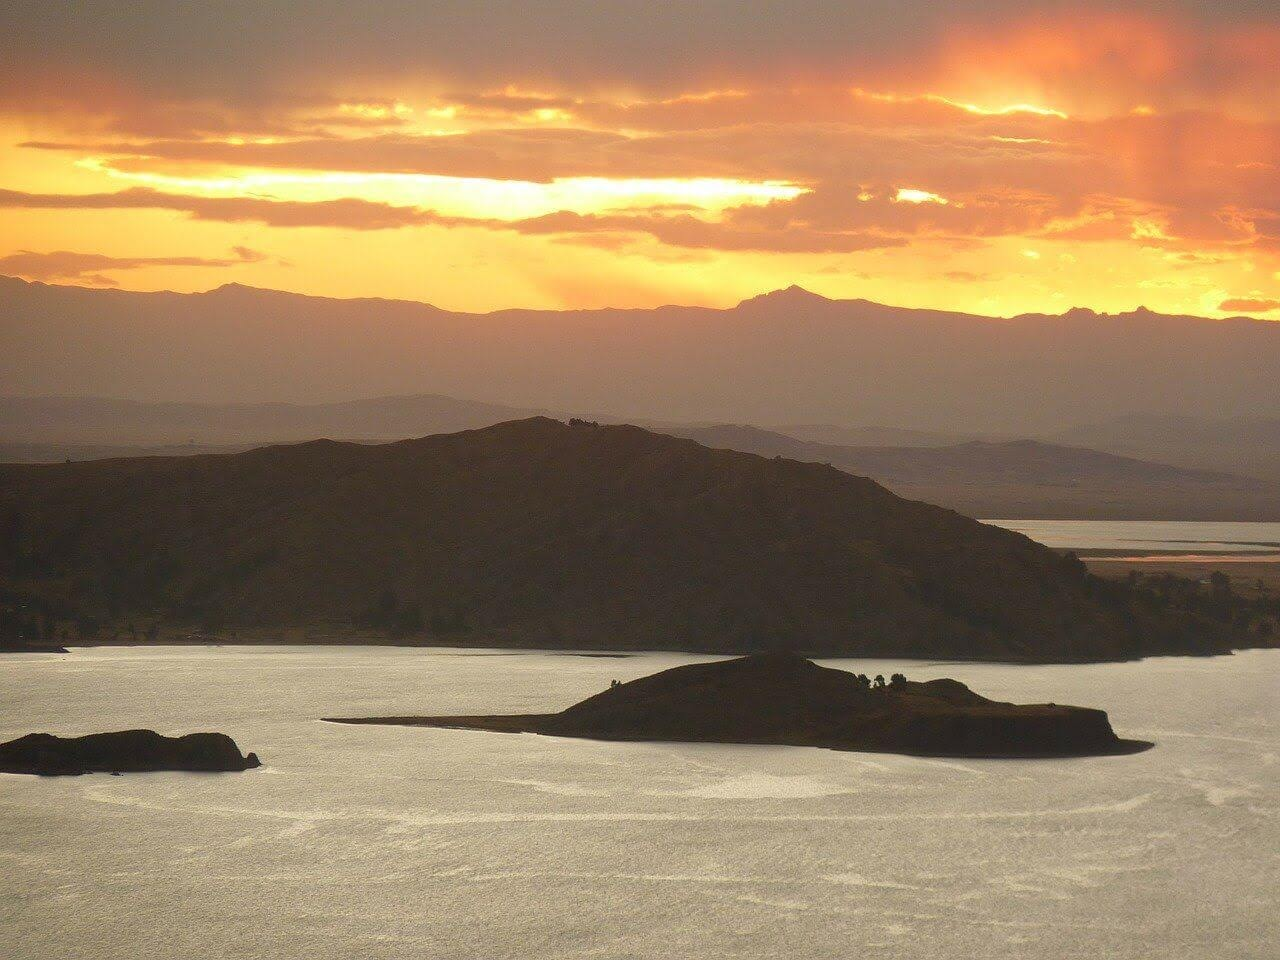 titicaca sunset in pery.jpg